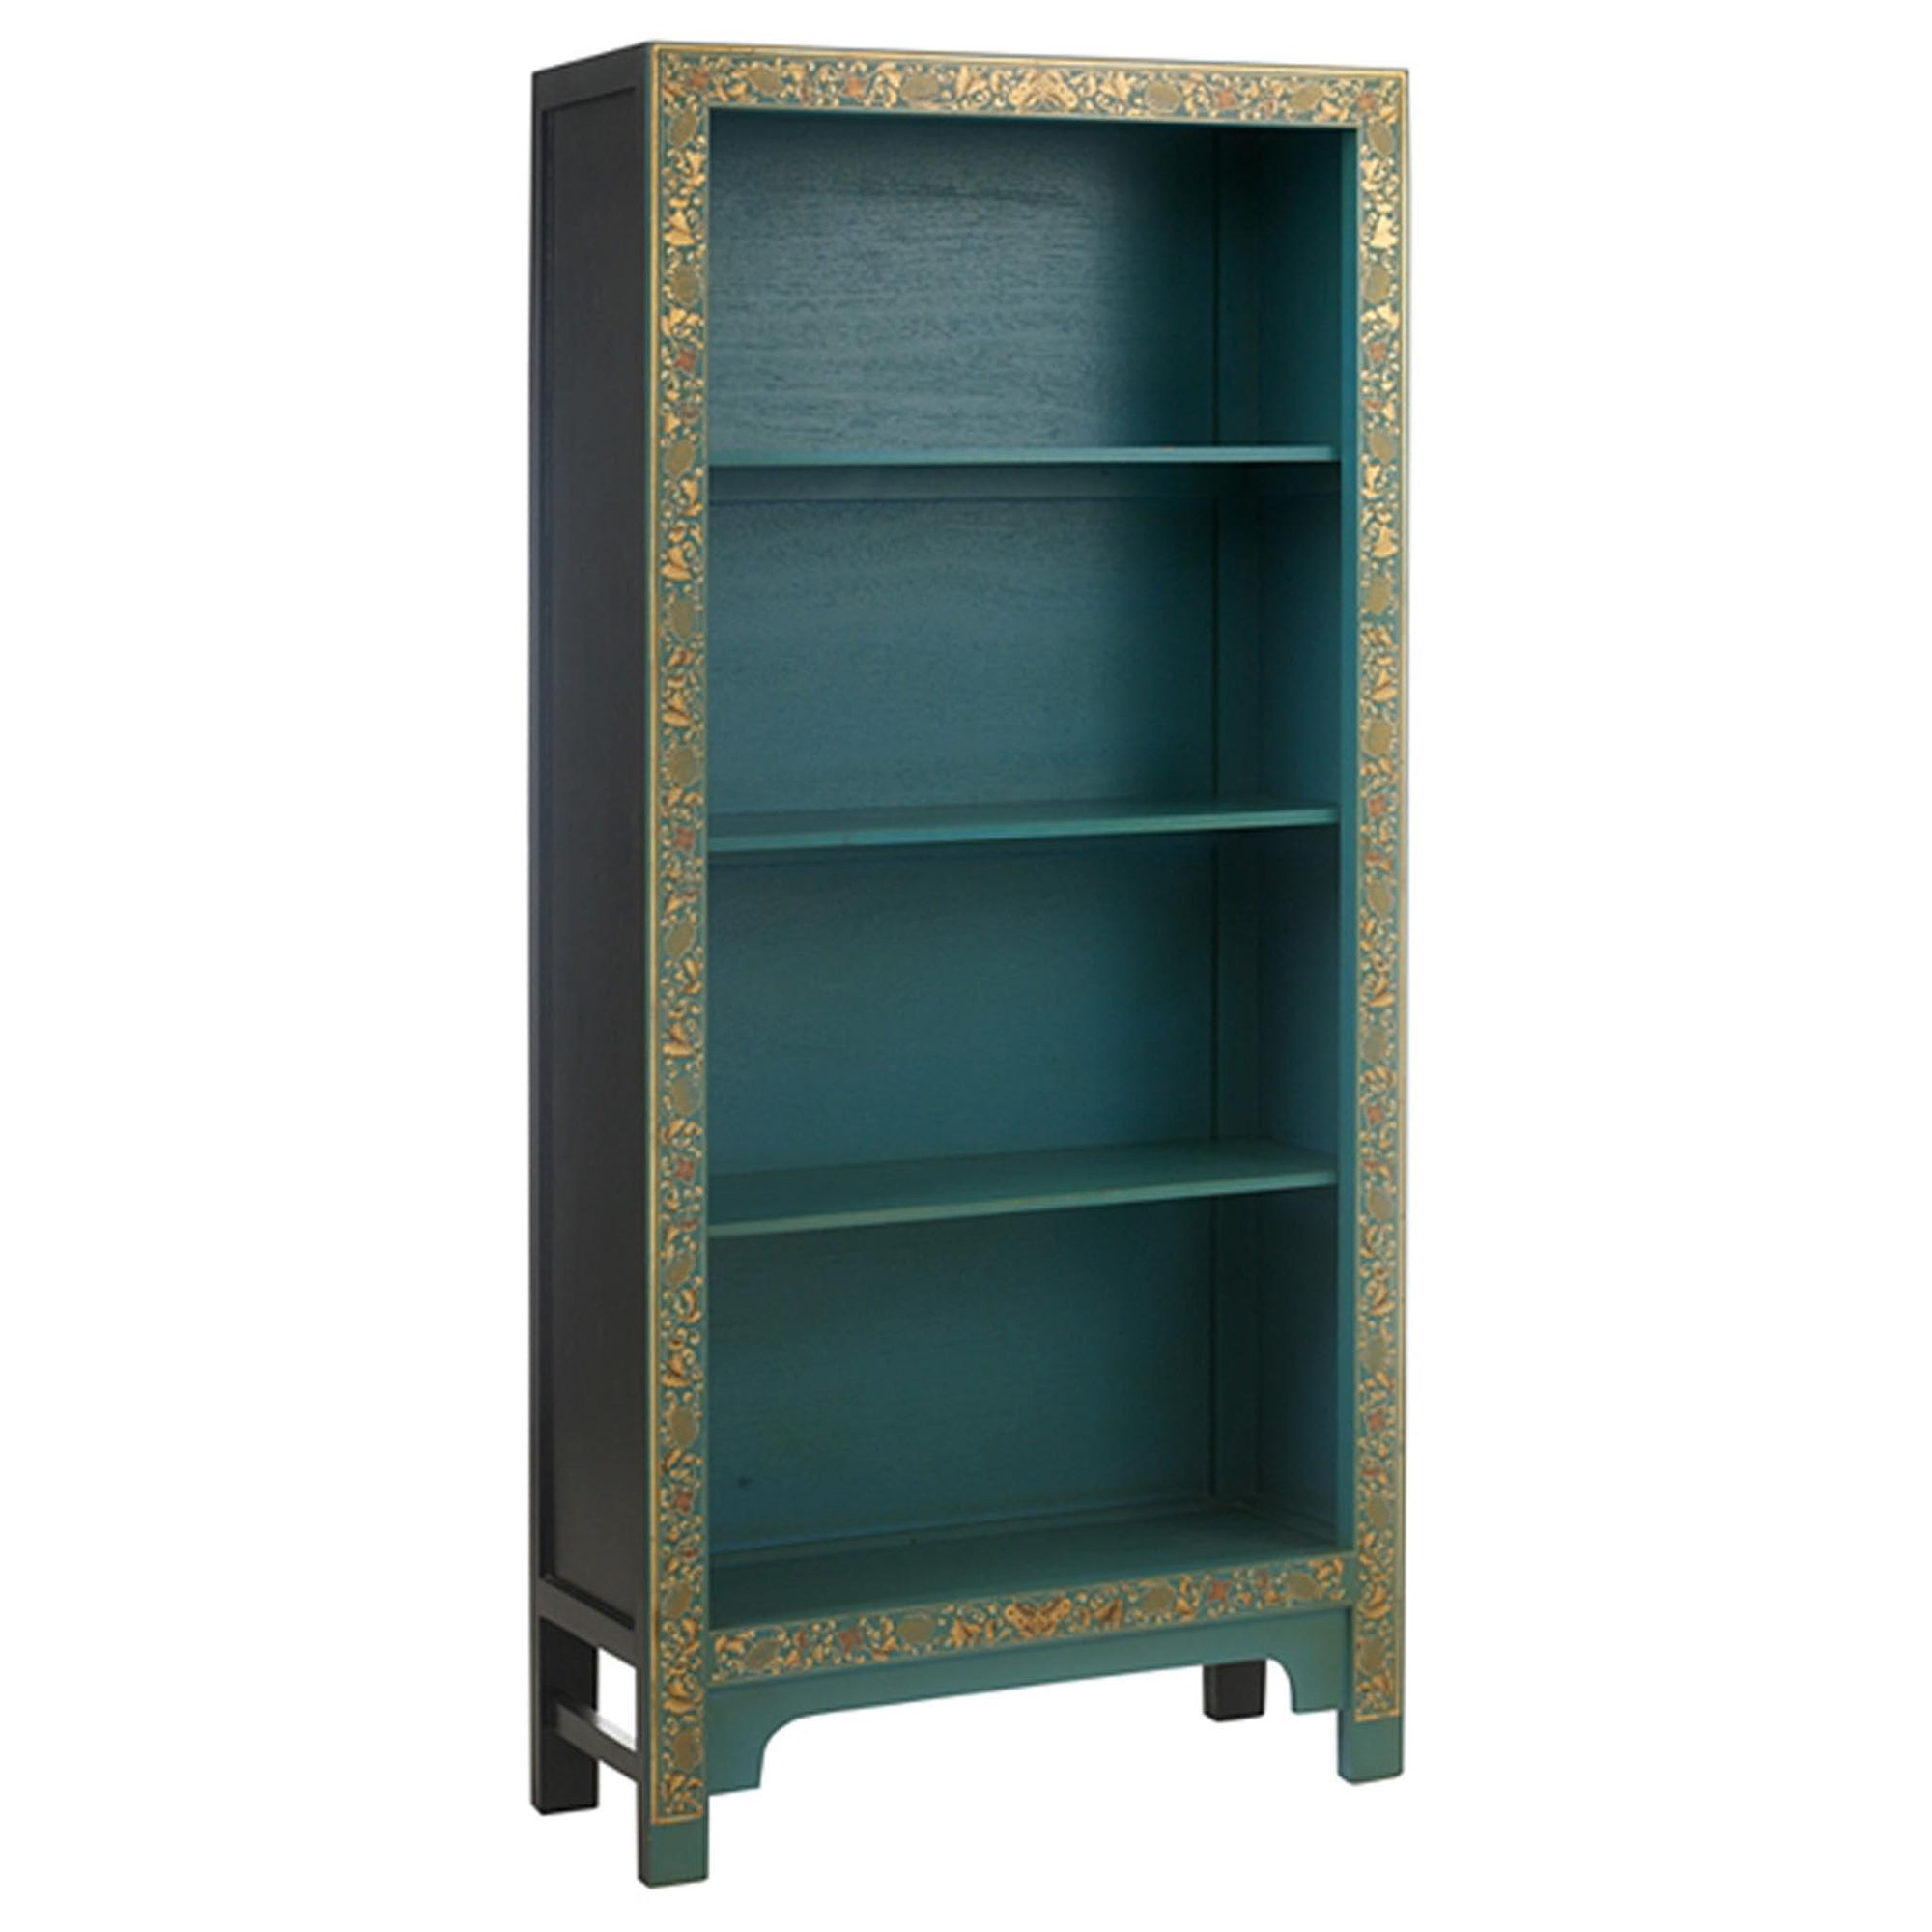 The Nine Schools Large Blue Bookcase by Roseland Furniture